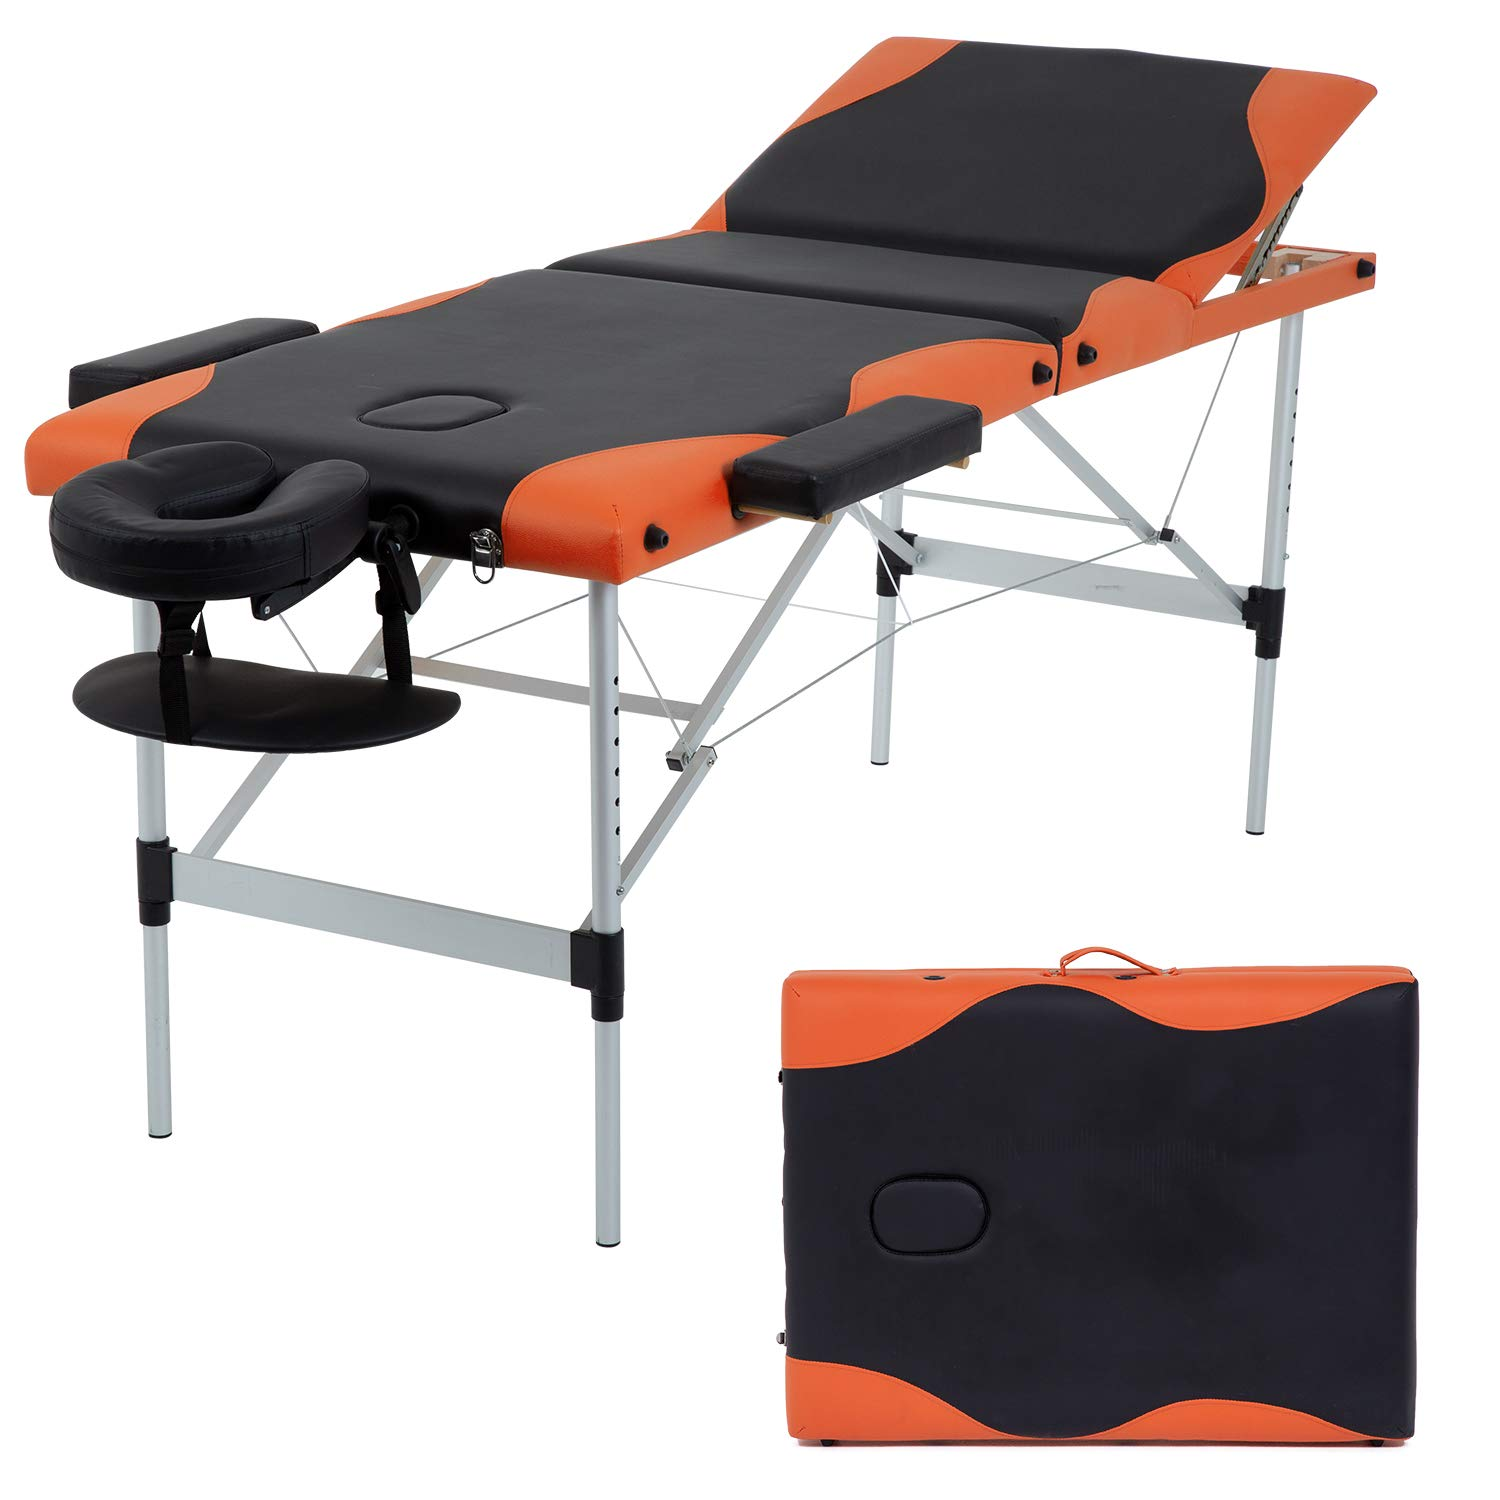 Massage Table Massage Bed Spa Bed 73 Inch Massage Table W/Face Cradle Carry Case Height Adjustable 2 Fold Portable Aluminum Facial Salon Tattoo Bed